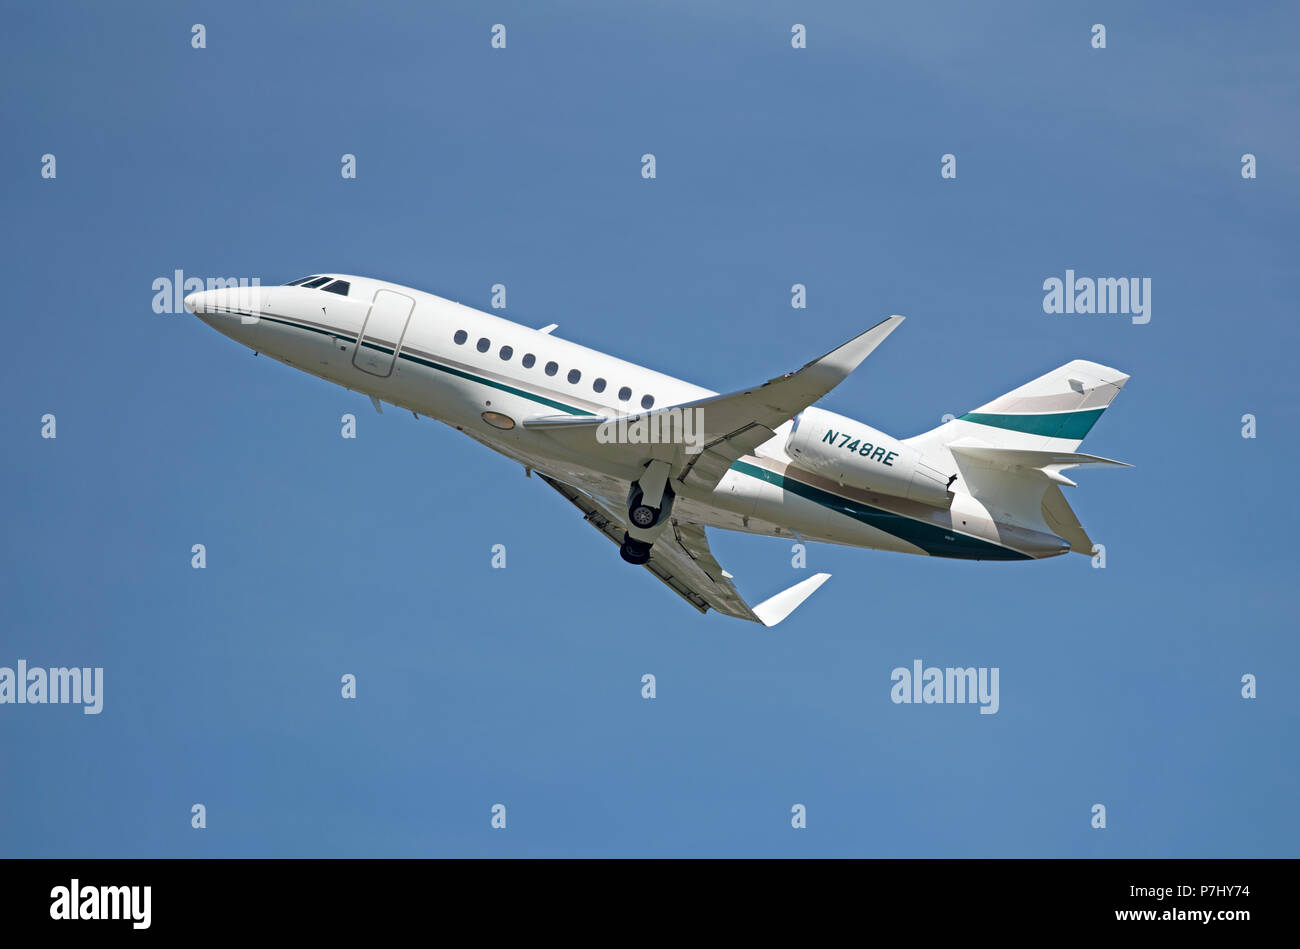 A loganair Saab 340 arriving at Inverness airfield having left Stornoway 40 minutes before. - Stock Image